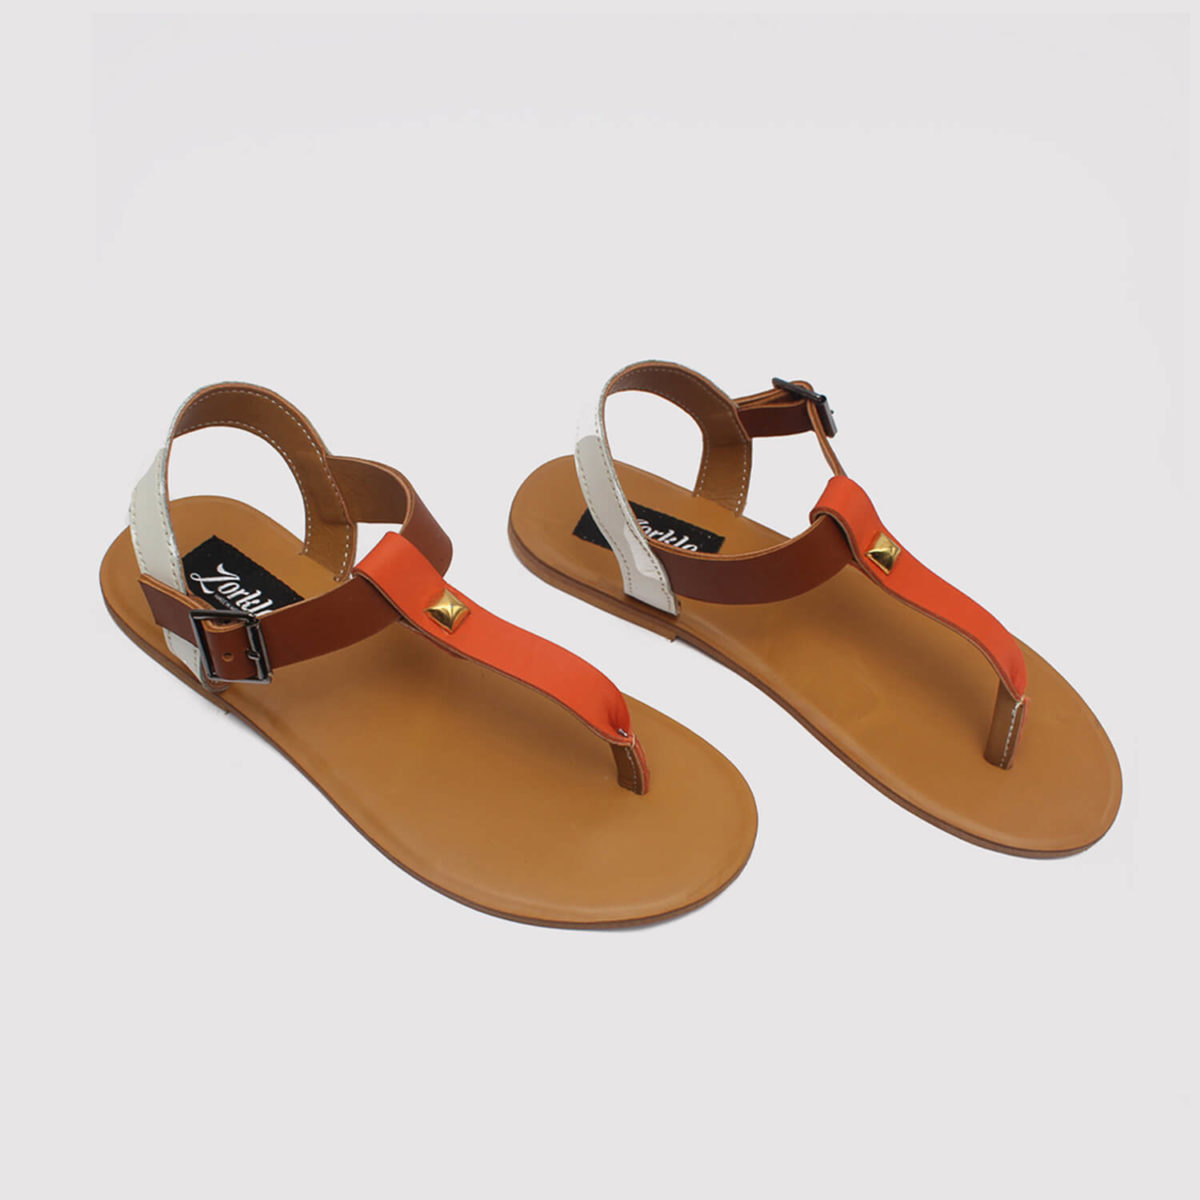 toke sandals orange brown white by zorkle shoes in lagos nigeria